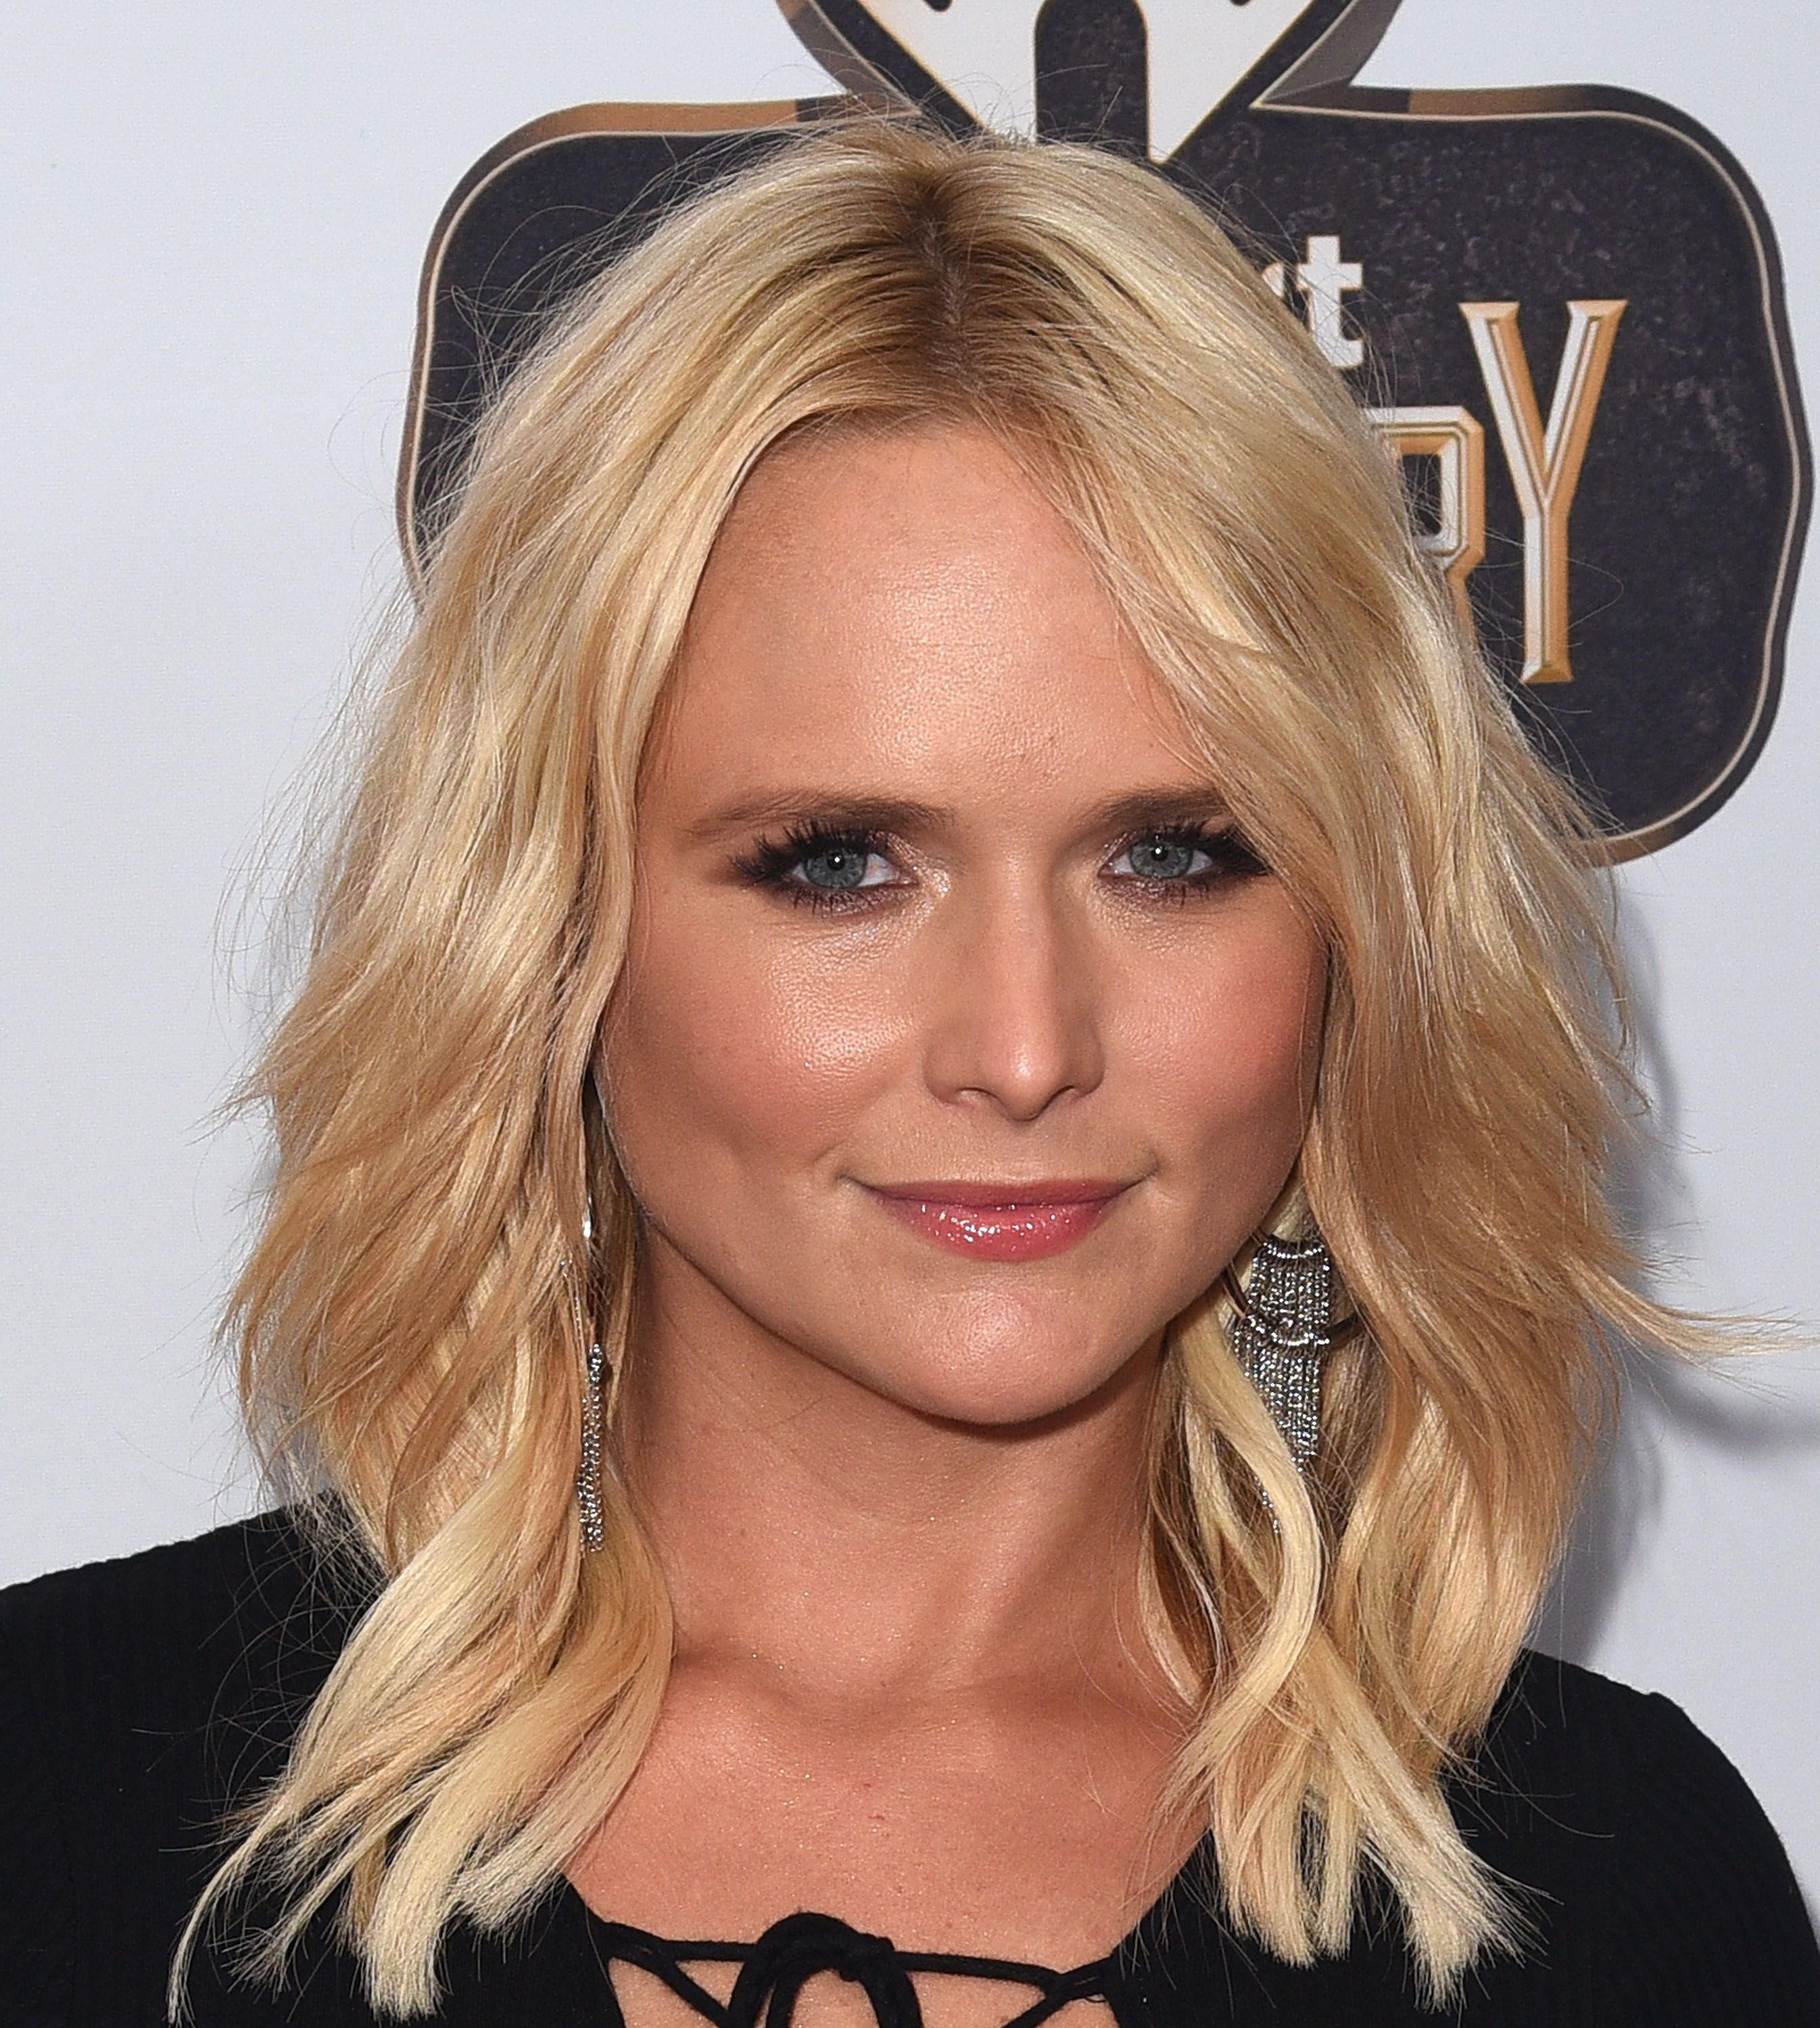 Miranda Lambert arrives at the iHeartCountry Festival at The Frank Erwin Center on April 30, 2016, in Austin, Texas   Photo: C. Flanigan/Getty Images